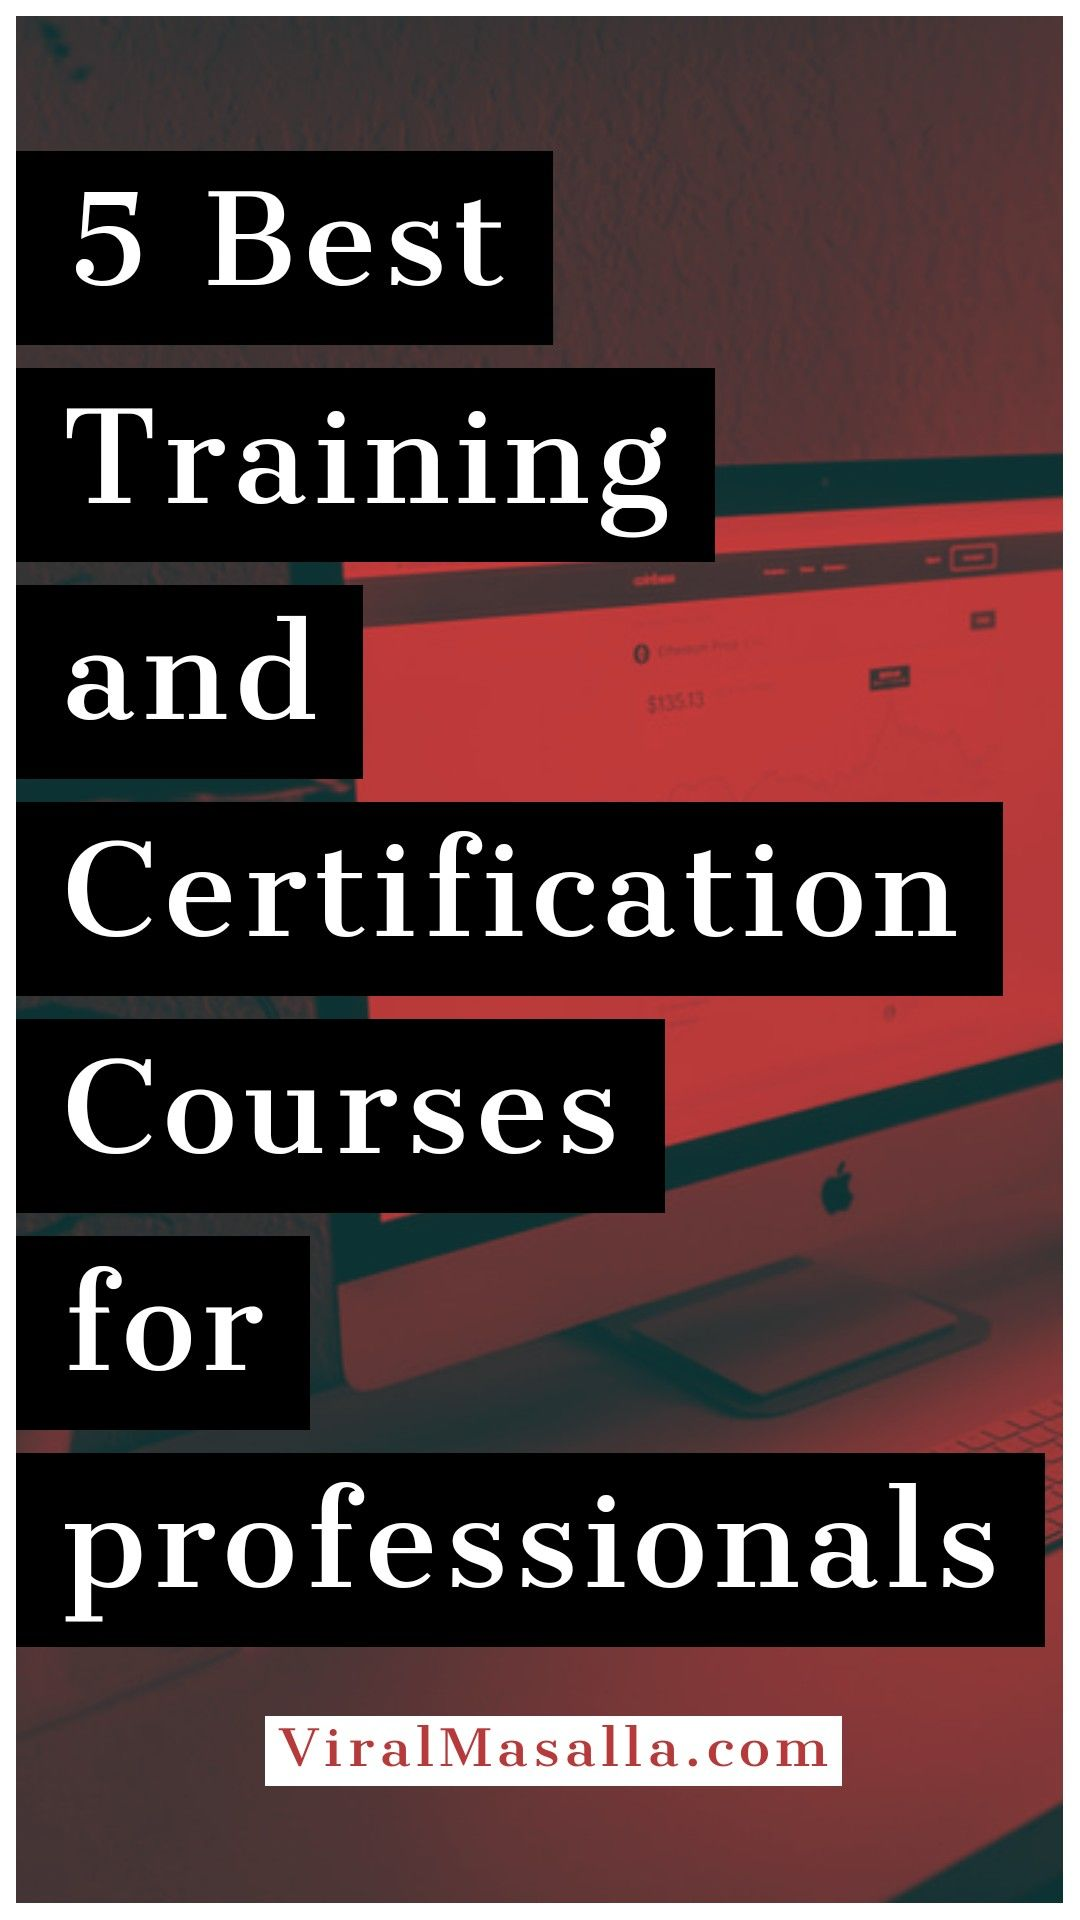 5 Best Training and Certification Courses for